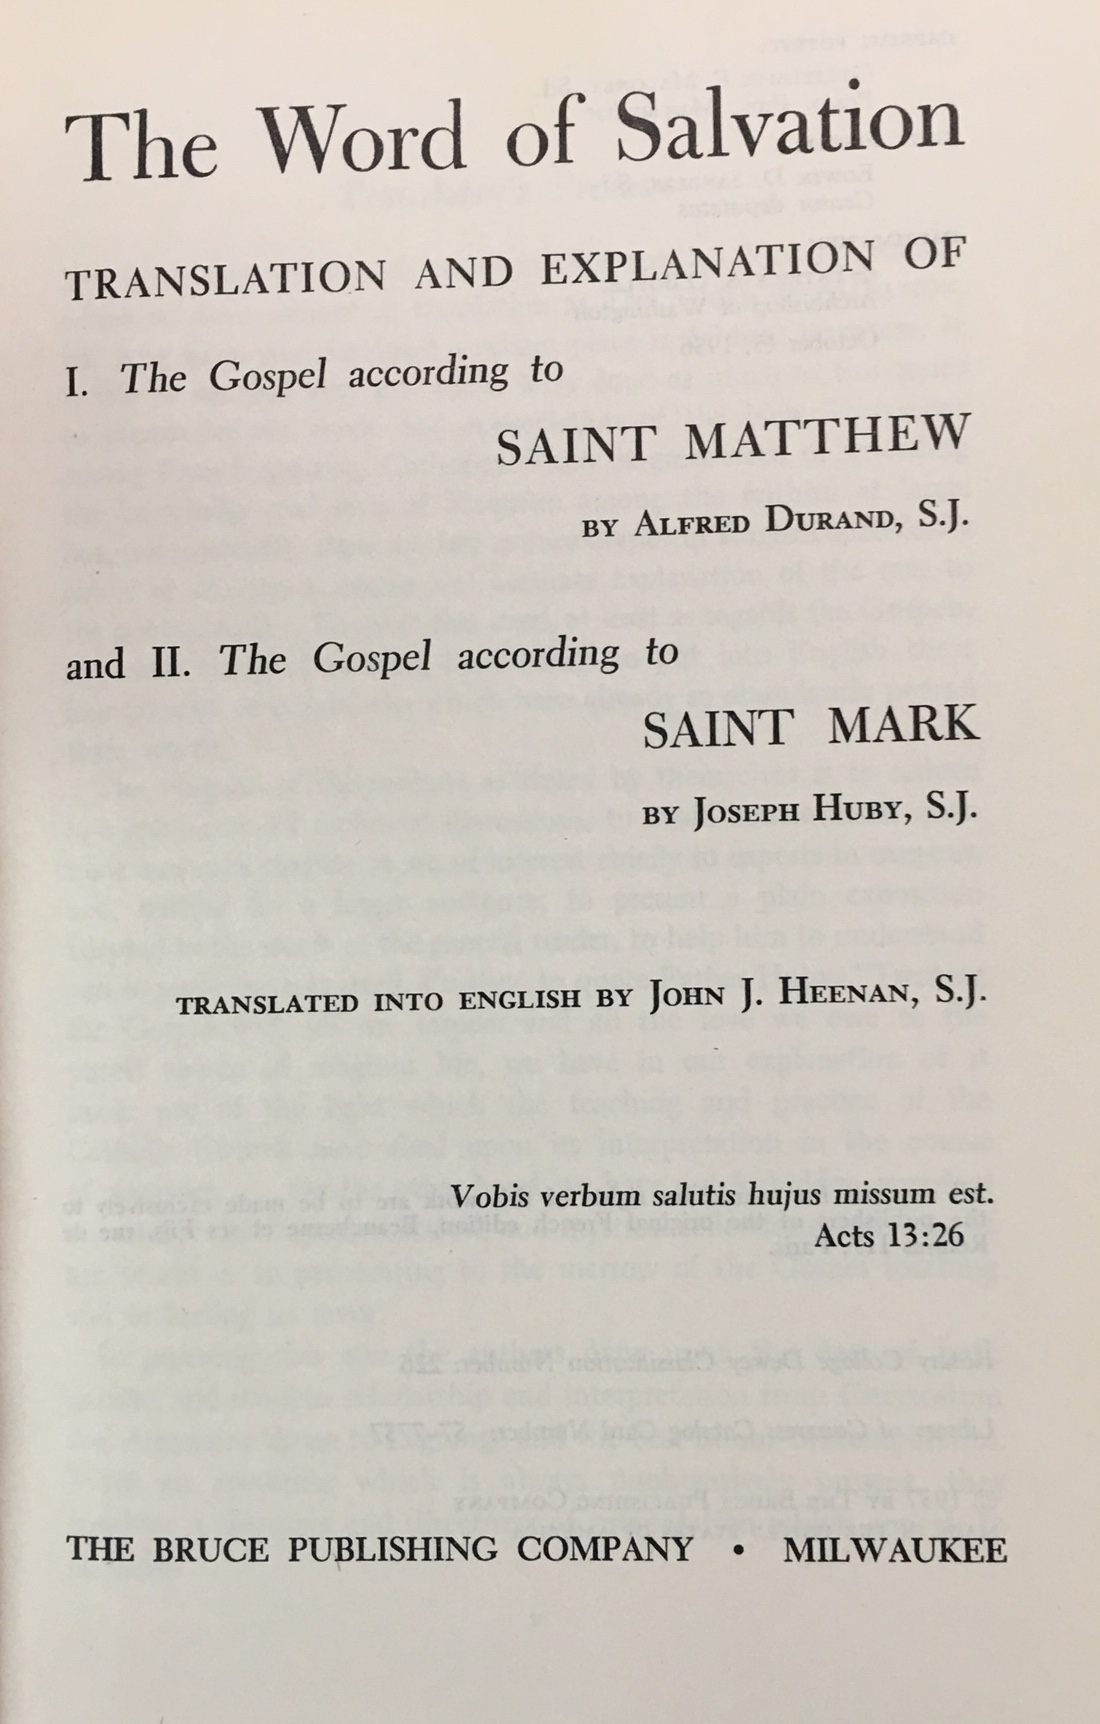 Image for The Word of Salvation, Translation and Explanation of: I. The Gospel According to Saint Matthew by Alfred Durand; and II. The Gospel According to Saint Mark by Joseph Huby